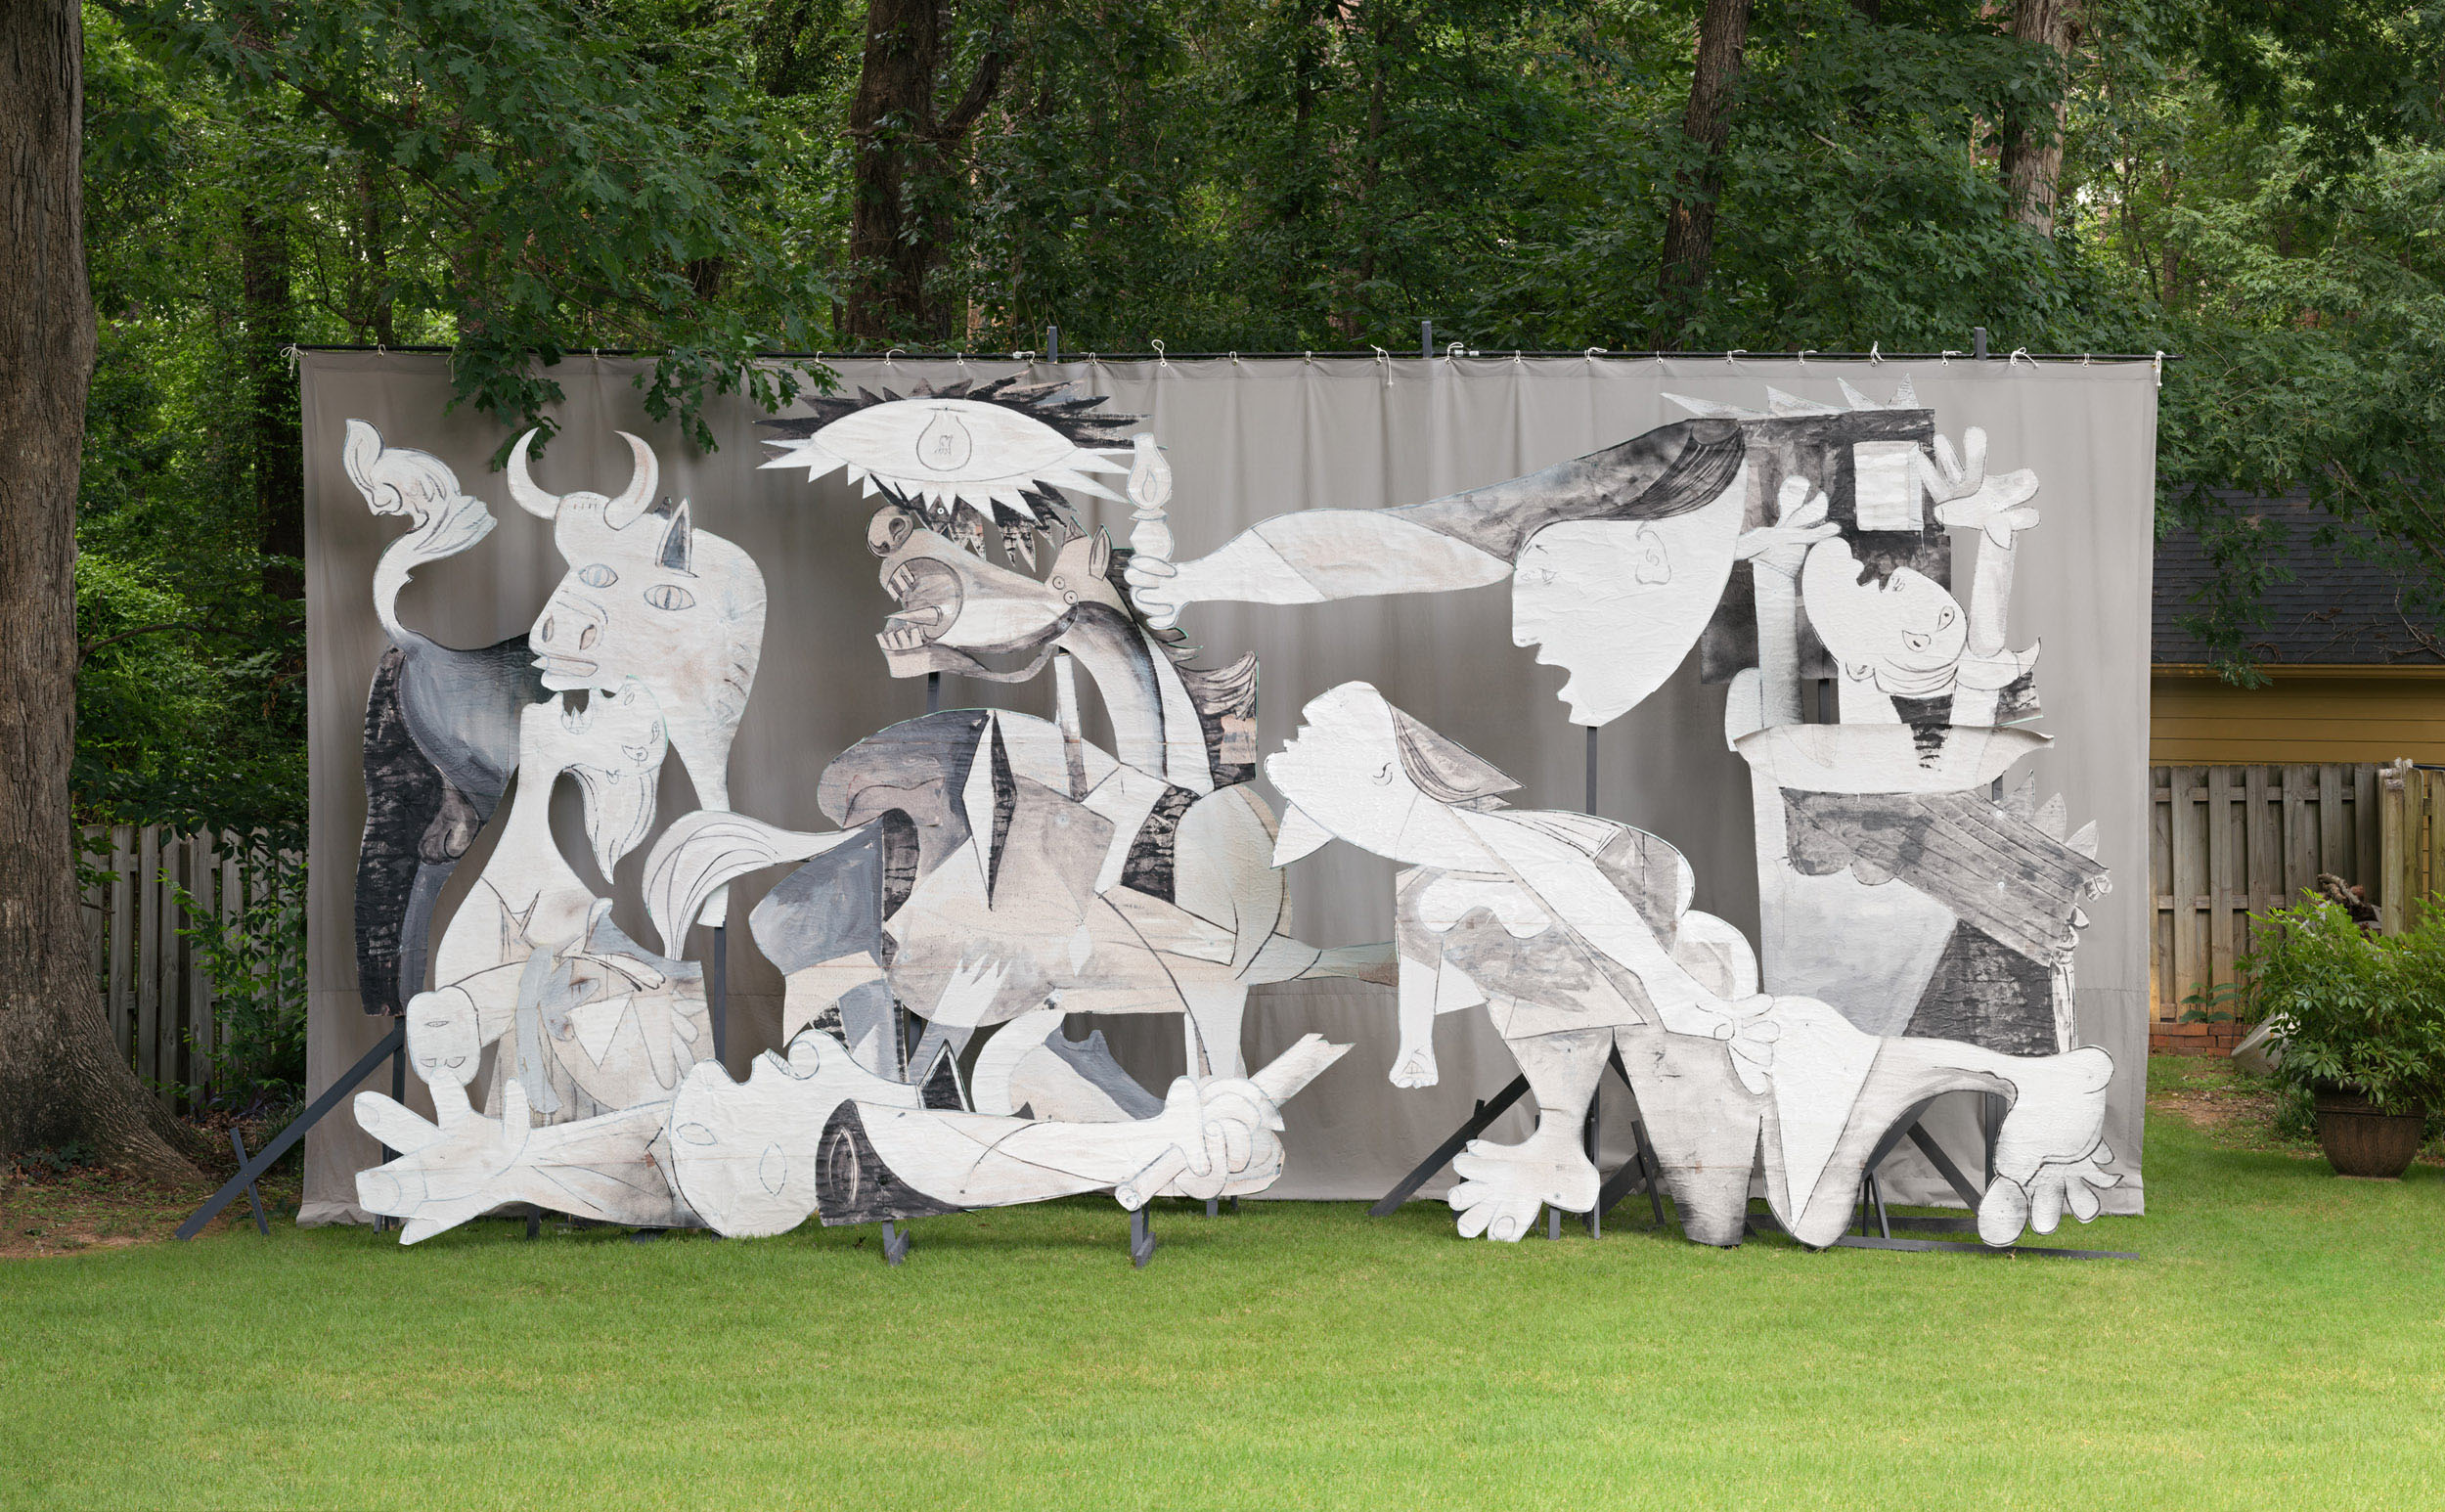 Adad Hannah photo of a restaging of Picasso's Guernica using wood and cardboard cut-outs, arranged in a lush green backyard space